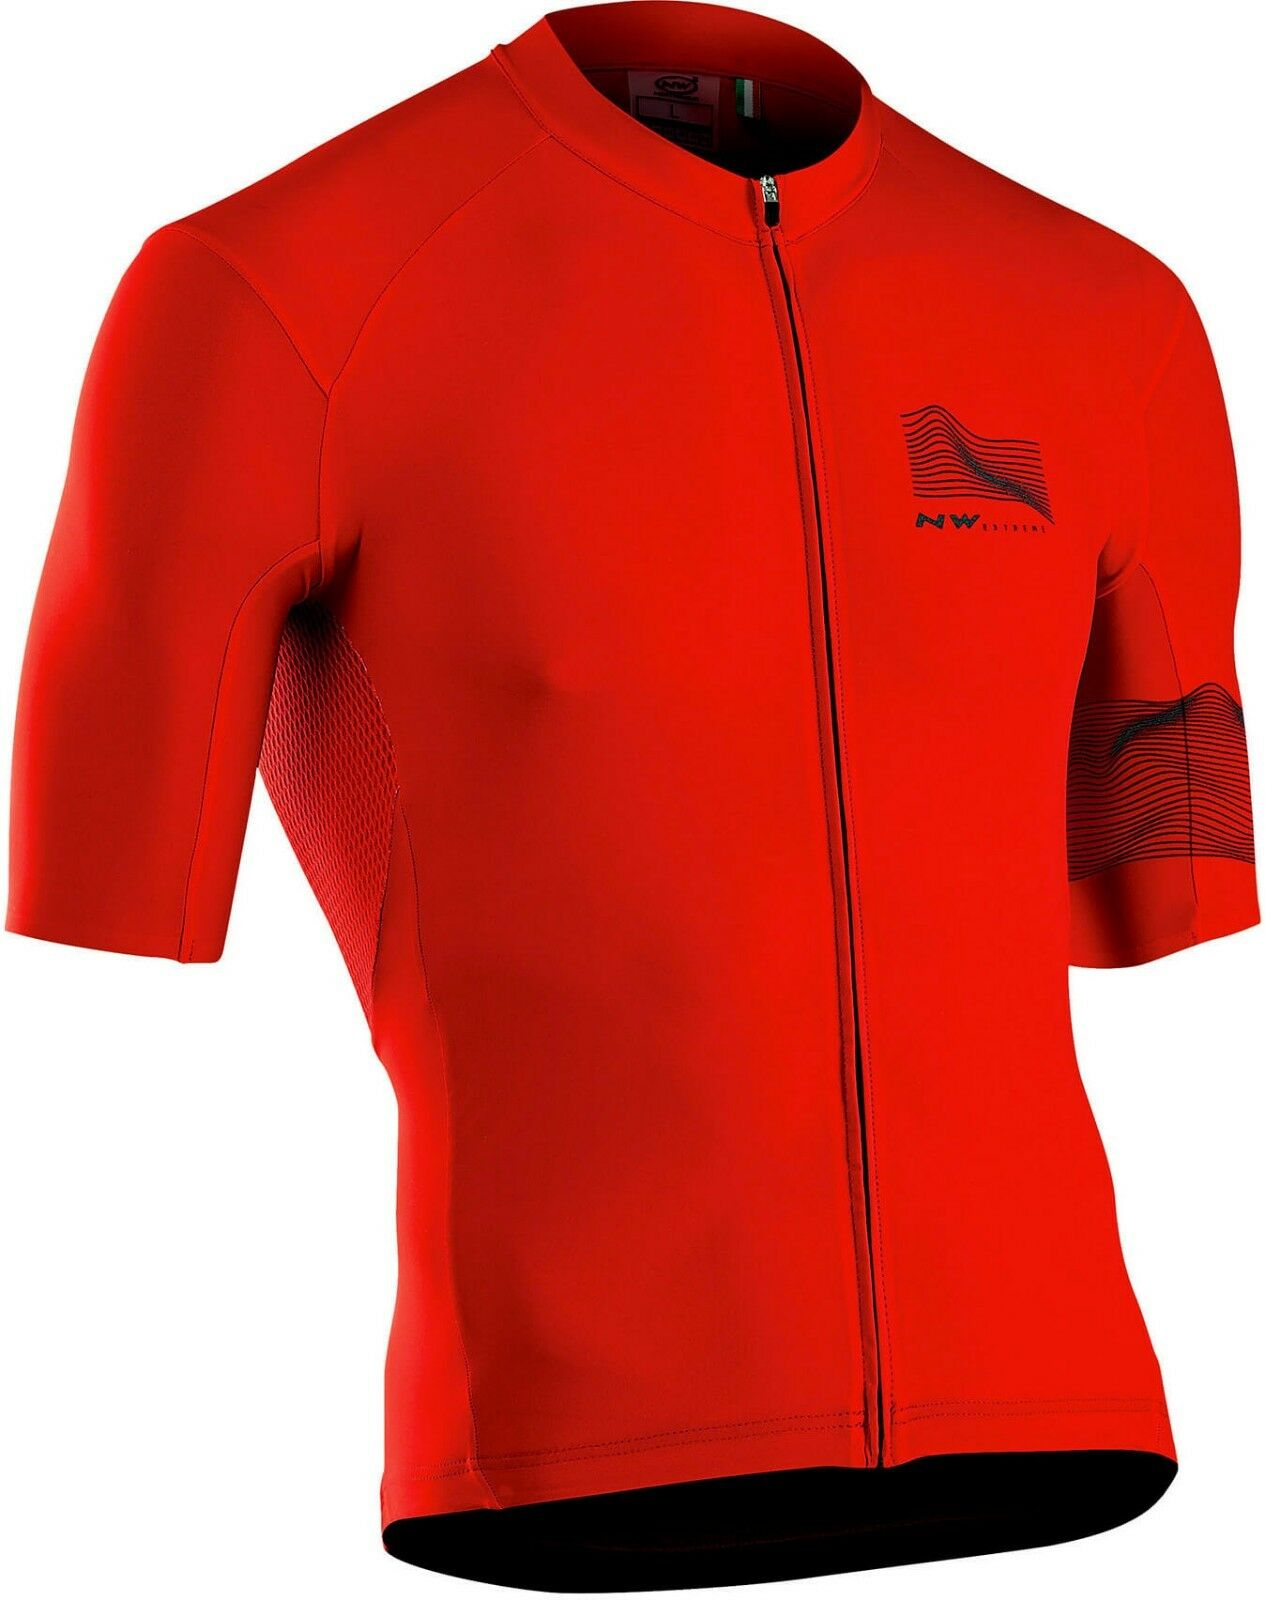 Maglia Manica Corta NORTHWAVE EXTREME 3 ROT/JERSEY ROT/JERSEY 3 NORTHWAVE EXTREME 3 ede884